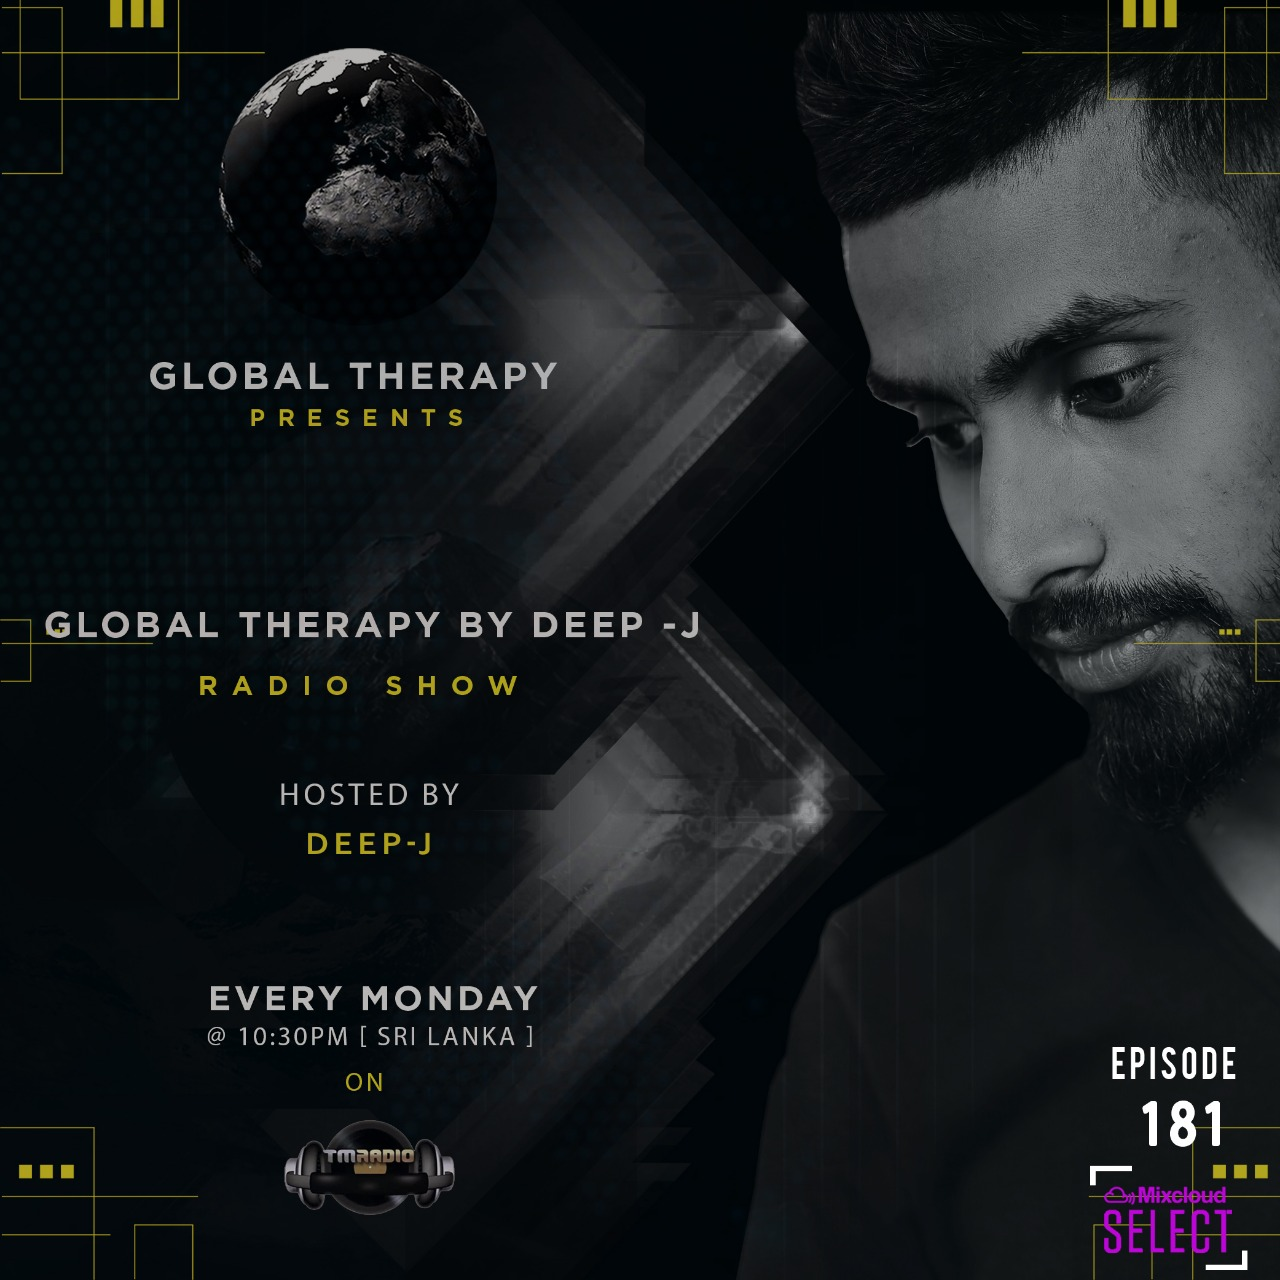 Global Therapy Episode 181 (from March 30th, 2020)